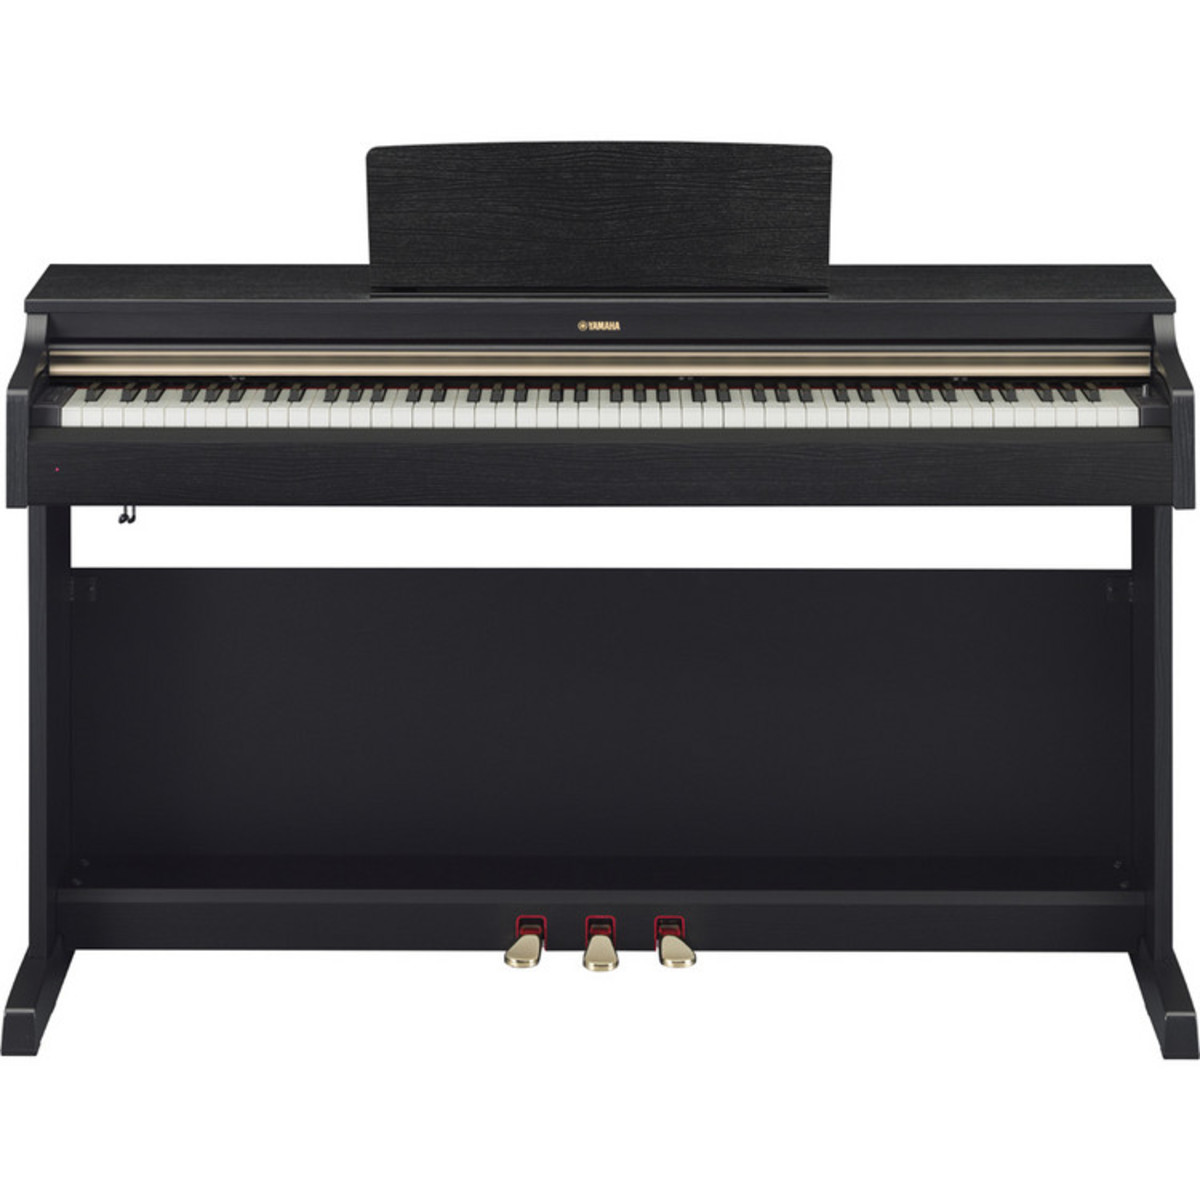 Yamaha arius ydp162b digital piano black walnut nearly for Yamaha ydp 162 digital piano